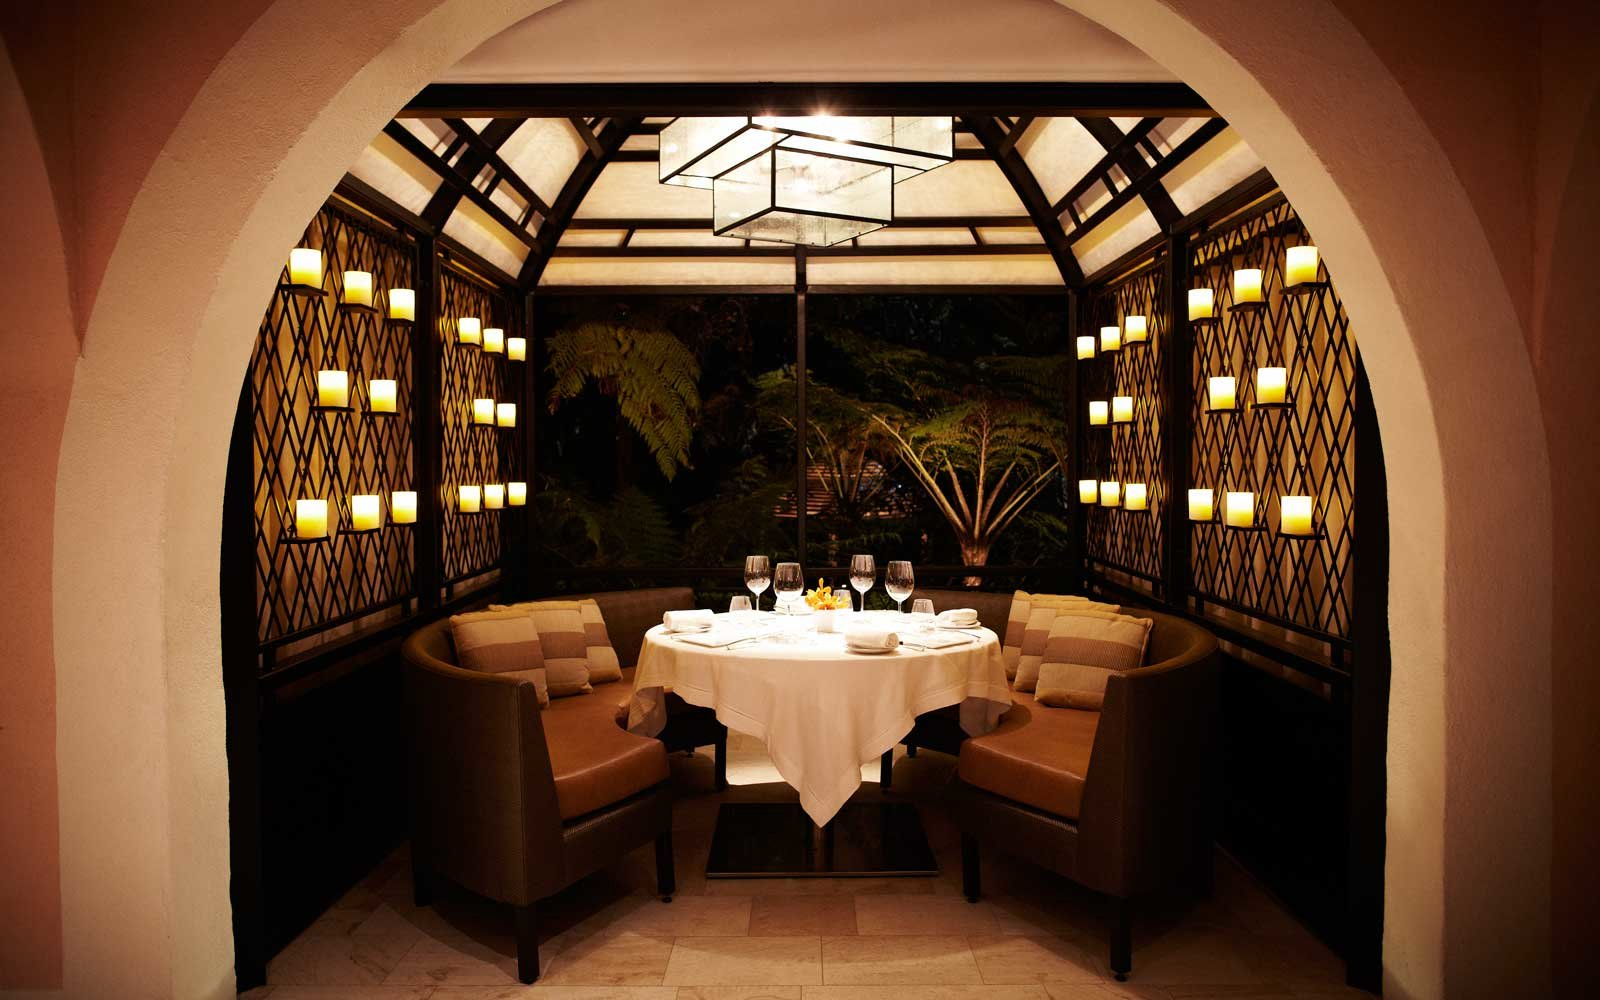 Hotel Bel Air Los Angeles California